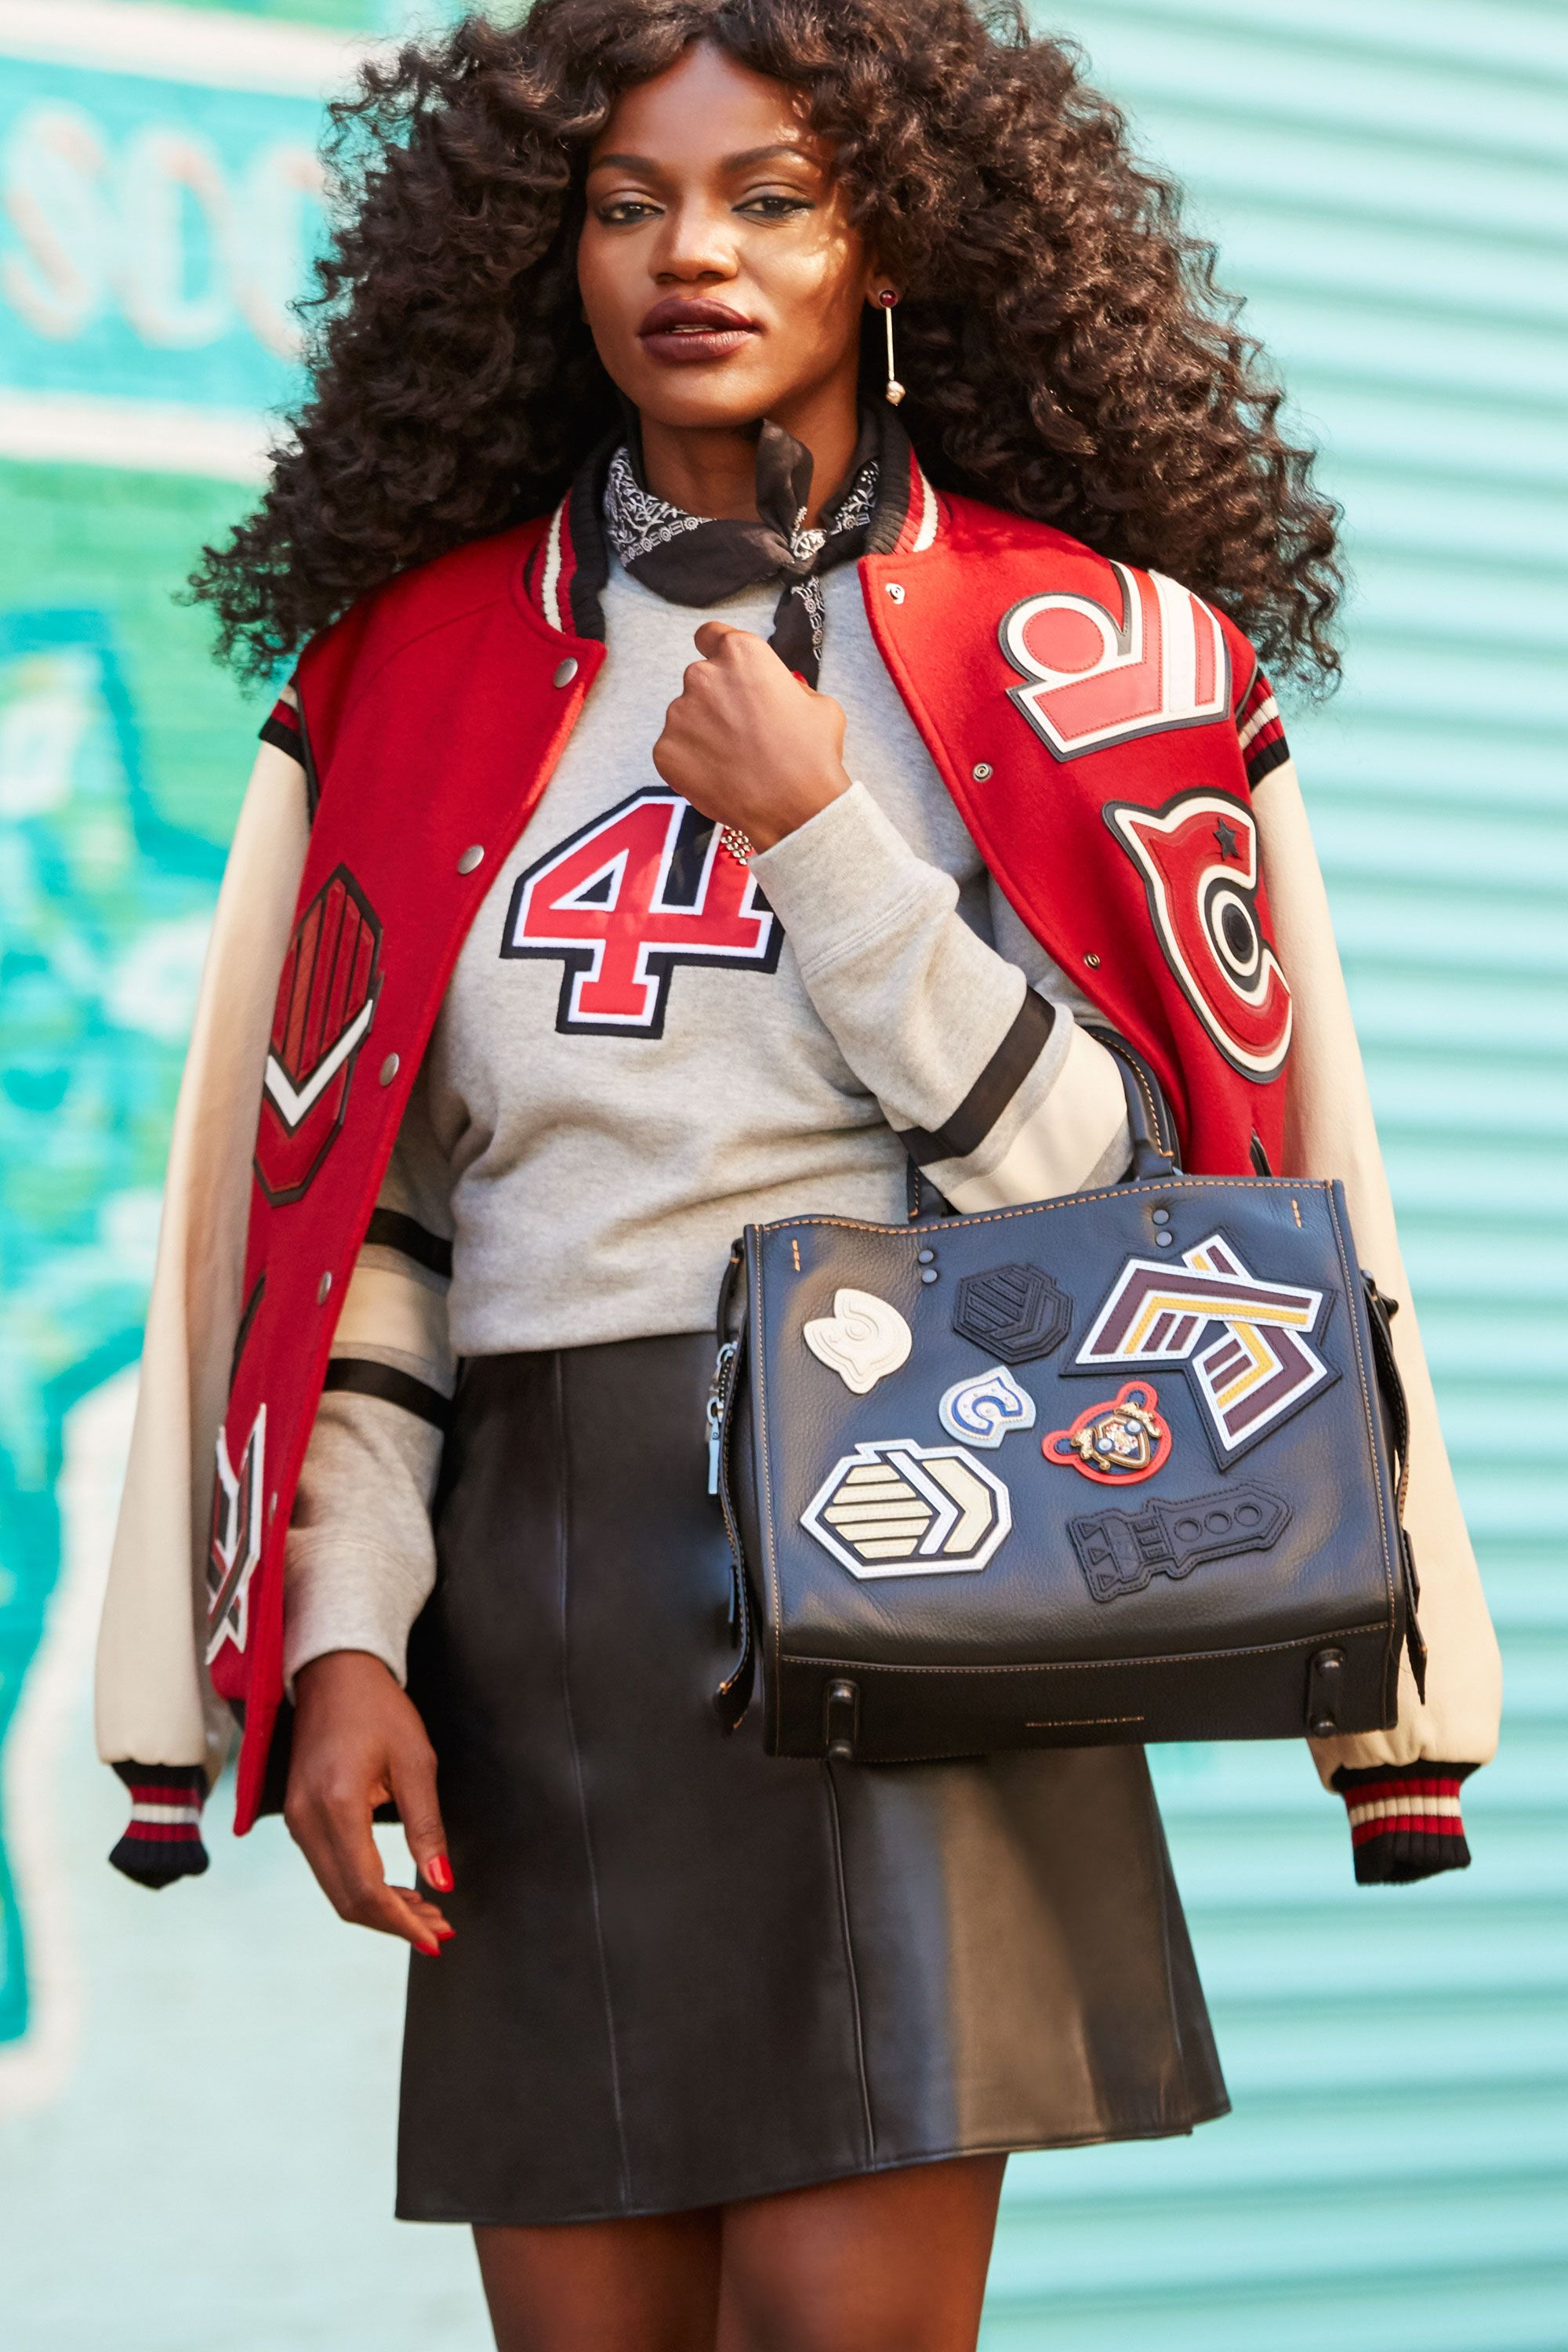 "<p>A varsity jacket is laid-back by default, so to avoid looking sloppy, Gold balances it with other pieces that impart edgy elegance, like a leather skirt. ""Ankle boots keep the skirt casual,"" she adds. ""They're functional, but polished."" Gold also recommends topping the skirt with a cozy sweatshirt and skipping statement jewelry. ""Tie a bandana around your neck instead,"" she says. ""You'll look like a rock star—like you're <em data-redactor-tag=""em"">in</em> the band."" </p><p><br> </p><p><em data-redactor-tag=""em"">Coach 1941 Oversized Varsity Jacket, $1,195, <a rel=""noskim"" href=""http://www.coach.com/coach-designer-vest-oversized-varsity-jacket/56368.html?CID=D_B_ELL_11733"" target=""_blank"">coach.com</a>; Coach <em data-redactor-tag=""em"">1941 </em><span class=""redactor-invisible-space"" data-verified=""redactor"" data-redactor-tag=""span"" data-redactor-class=""redactor-invisible-space""></span>Embellished 41 Sweatshirt, $350, <a rel=""noskim"" href=""http://www.coach.com/coach-designer-tops-embellished-41-sweatshirt/57140.html?CID=D_B_ELL_11734"" target=""_blank"">coach.com</a>; Coach <em data-redactor-tag=""em"">1941 </em><span class=""redactor-invisible-space"" data-verified=""redactor"" data-redactor-tag=""span"" data-redactor-class=""redactor-invisible-space""></span>Leather A-Line Skirt, $695, <a rel=""noskim"" href=""http://www.coach.com/coach-designer-pants-leather-a-line-skirt/56692.html?CID=D_B_ELL_11735"" target=""_blank"">coach.com</a>; <em data-redactor-tag=""em"">Coach <em data-redactor-tag=""em"">1941 </em><span class=""redactor-invisible-space"" data-verified=""redactor"" data-redactor-tag=""span"" data-redactor-class=""redactor-invisible-space""></span>Chelsea Boot, $575, </em><em data-redactor-tag=""em""><a rel=""noskim"" href=""http://www.coach.com/coach-designer-booties-chelsea-boot/Q8919.html?CID=D_B_ELL_11736"" target=""_blank"">coach.com</a>;</em> Coach <em data-redactor-tag=""em"">1941 </em><span class=""redactor-invisible-space"" data-verified=""redactor"" data-redactor-tag=""span"" data-redactor-class=""redactor-invisible-space""></span>Varsity Patch Rogue Bag, $895, <a rel=""noskim"" href=""http://www.coach.com/coach-designer-purses-varsity-patch-rogue-bag-in-pebble-leather/57231.html?CID=D_B_ELL_11737"" target=""_blank"">coach.com</a></em> </p><p><em data-redactor-tag=""em""></em></p>"